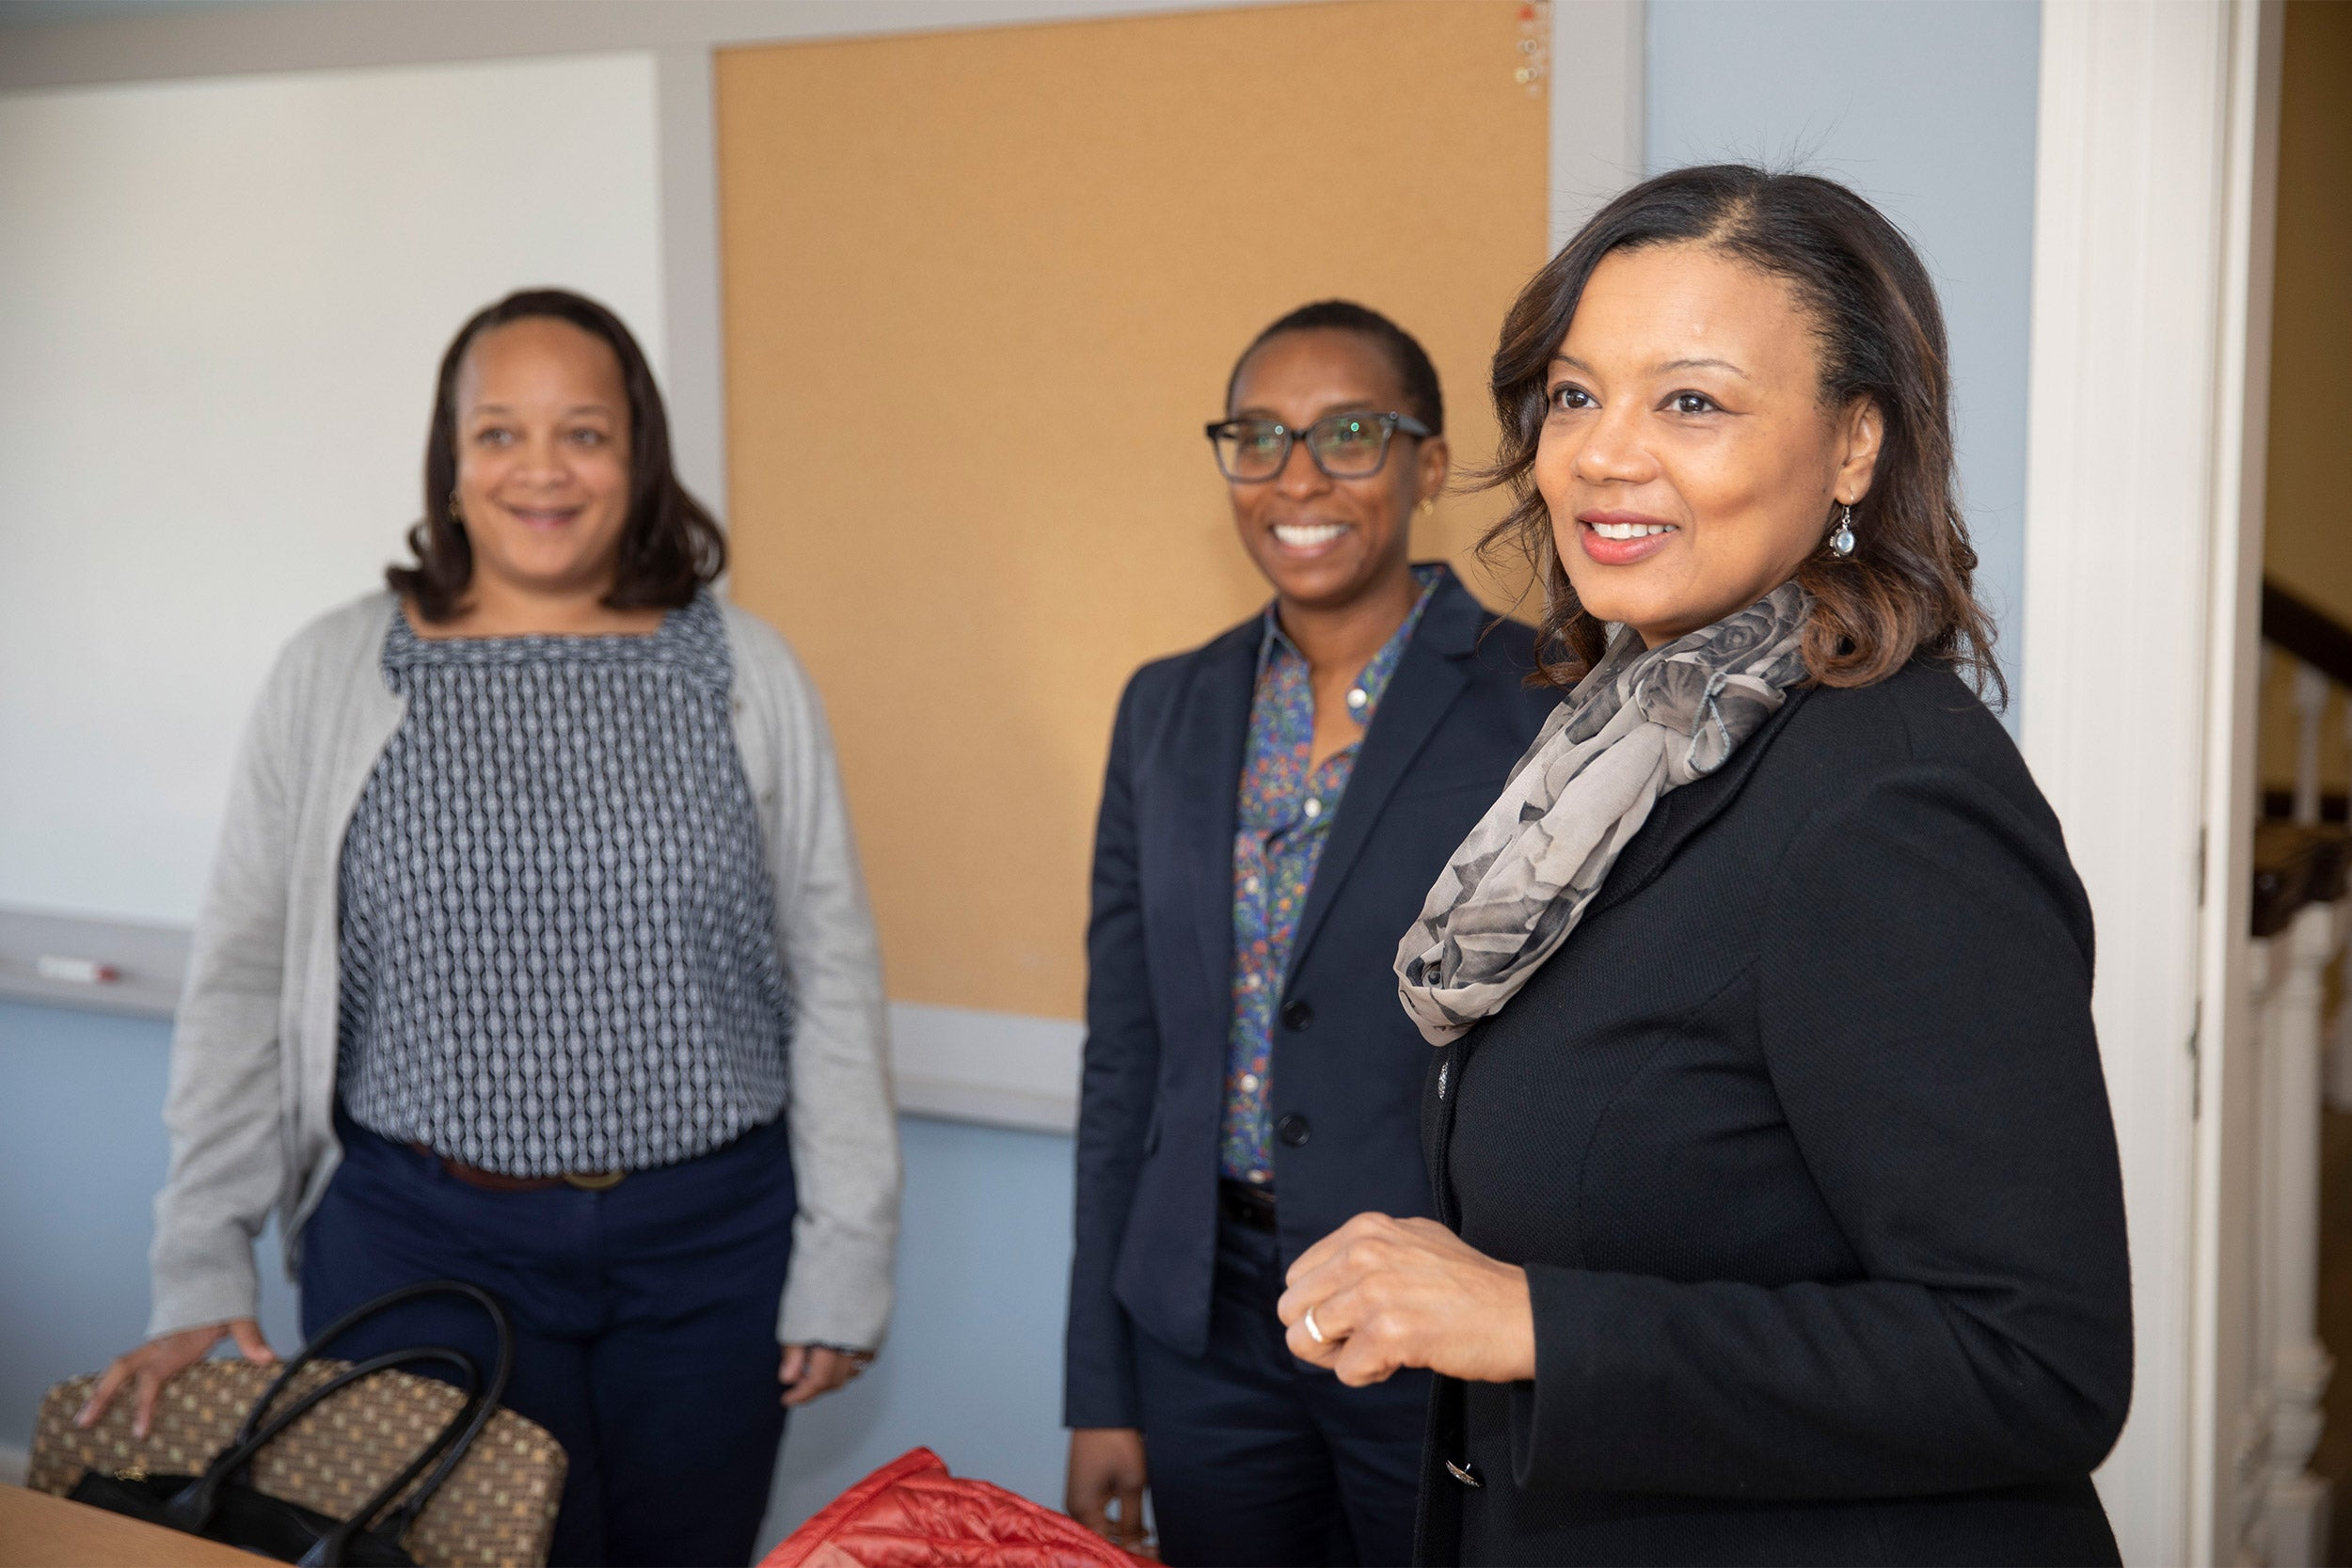 Bridget Terry Long, (from left) Saris Professor of Education and Economics, Dean of the Harvard Graduate School of Education (HGSE), Claudine Gay, the Edgerley Family Dean of the Faculty of Arts and Sciences (FAS), Tomiko Brown-Nagin, dean of Harvardís Radcliffe Institute for Advanced Study, meet in Fay House.